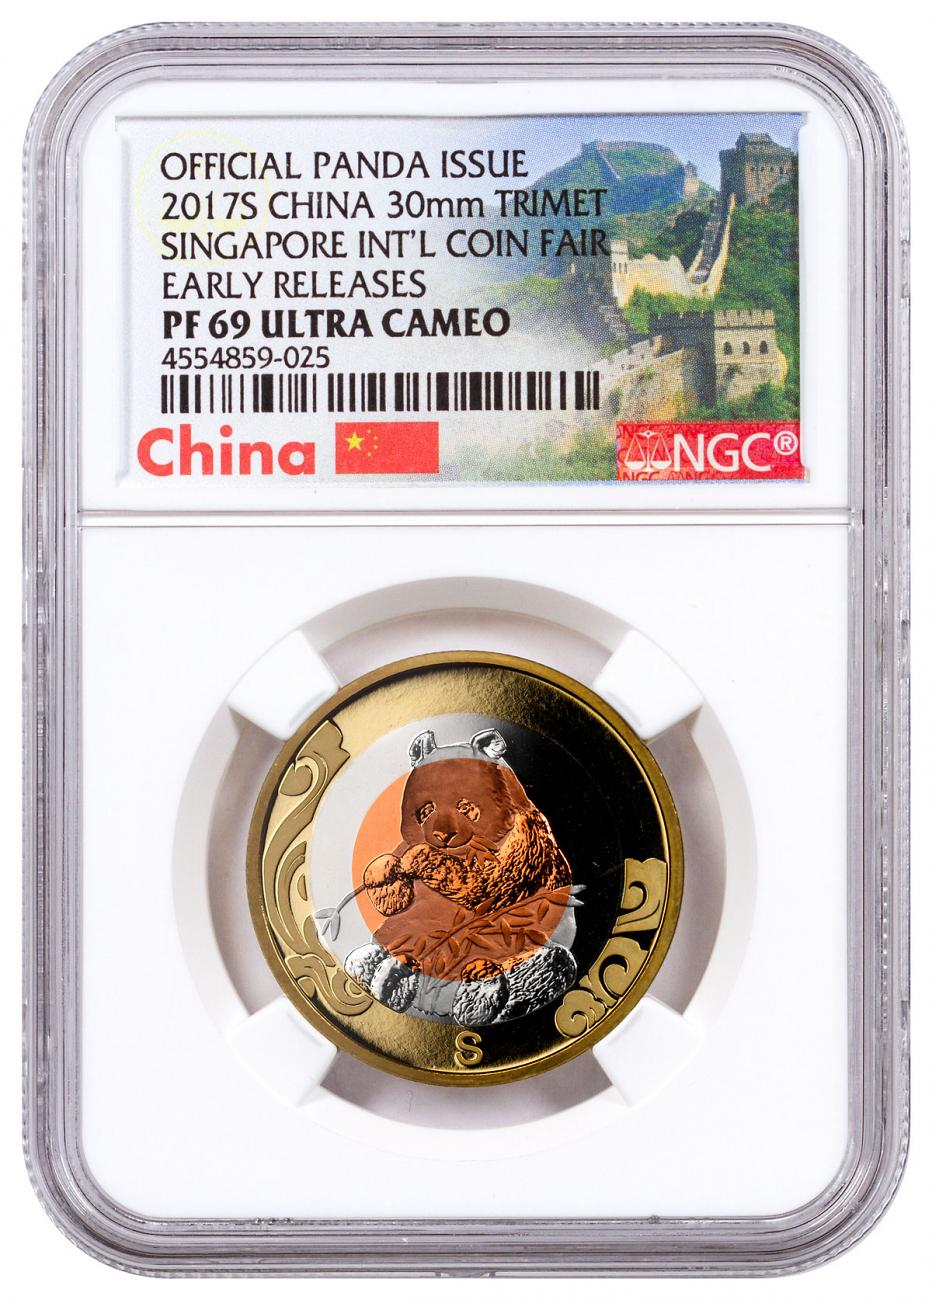 2017-S China Singapore International Coin Fair Tri-Metal Panda Brass + Cupronickel + Copper Proof Medal NGC PF69 UC ER Exclusive Great Wall Label